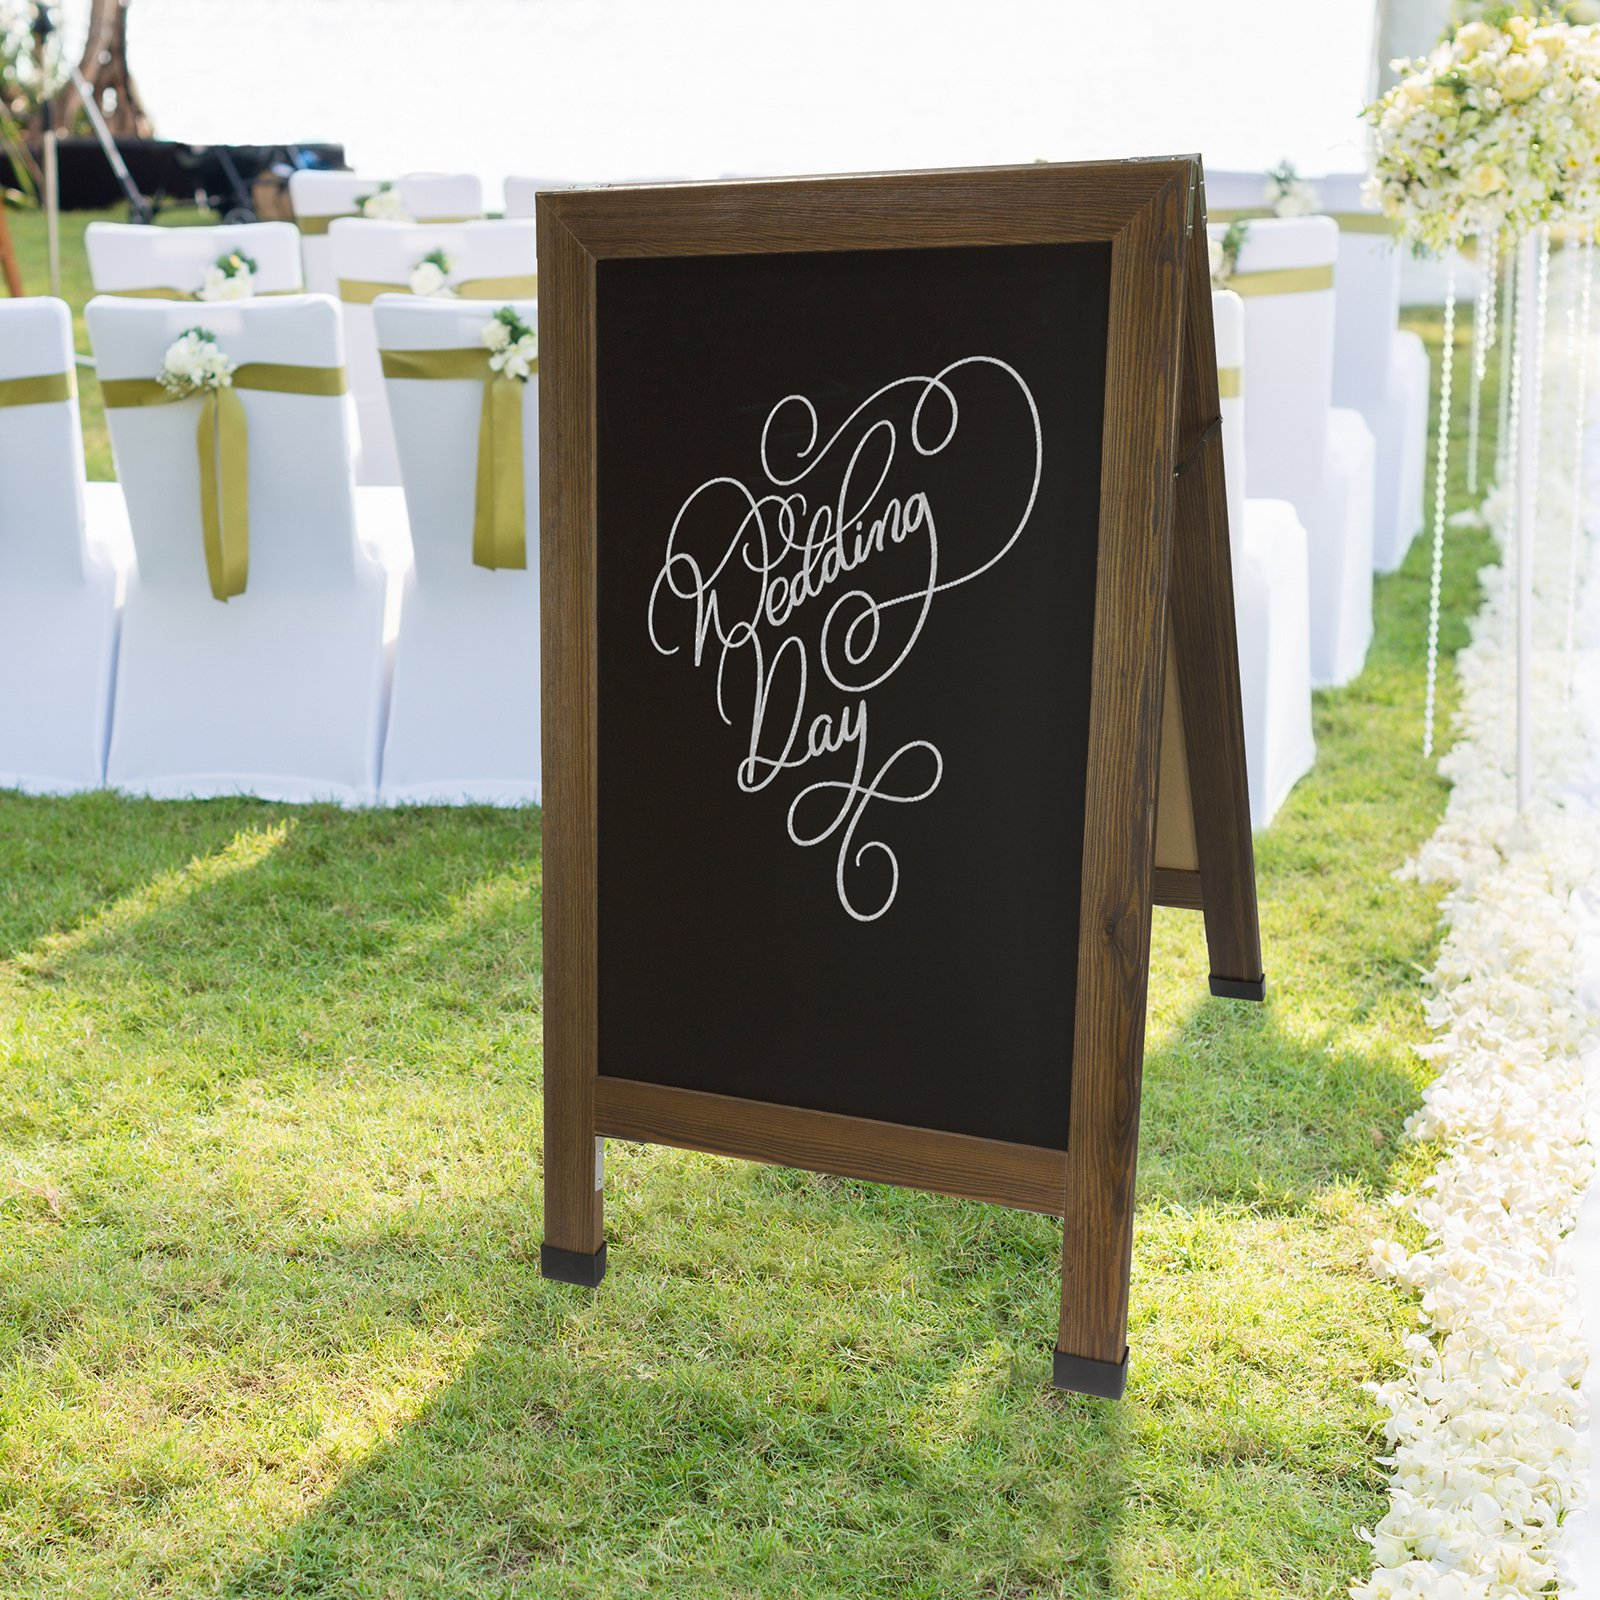 Sandwich Board Sidewalk Chalkboard Sign: REINFORCED, HEAVY-DUTY / 10 CHALK MARKERS / 40 PIECE STENCIL SET / CHALK / ERASER / DOUBLE SIDED / LARGE 40x23 Chalk Board Standing Sign A-Frame (Rustic) by Excello Global Products (Image #9)